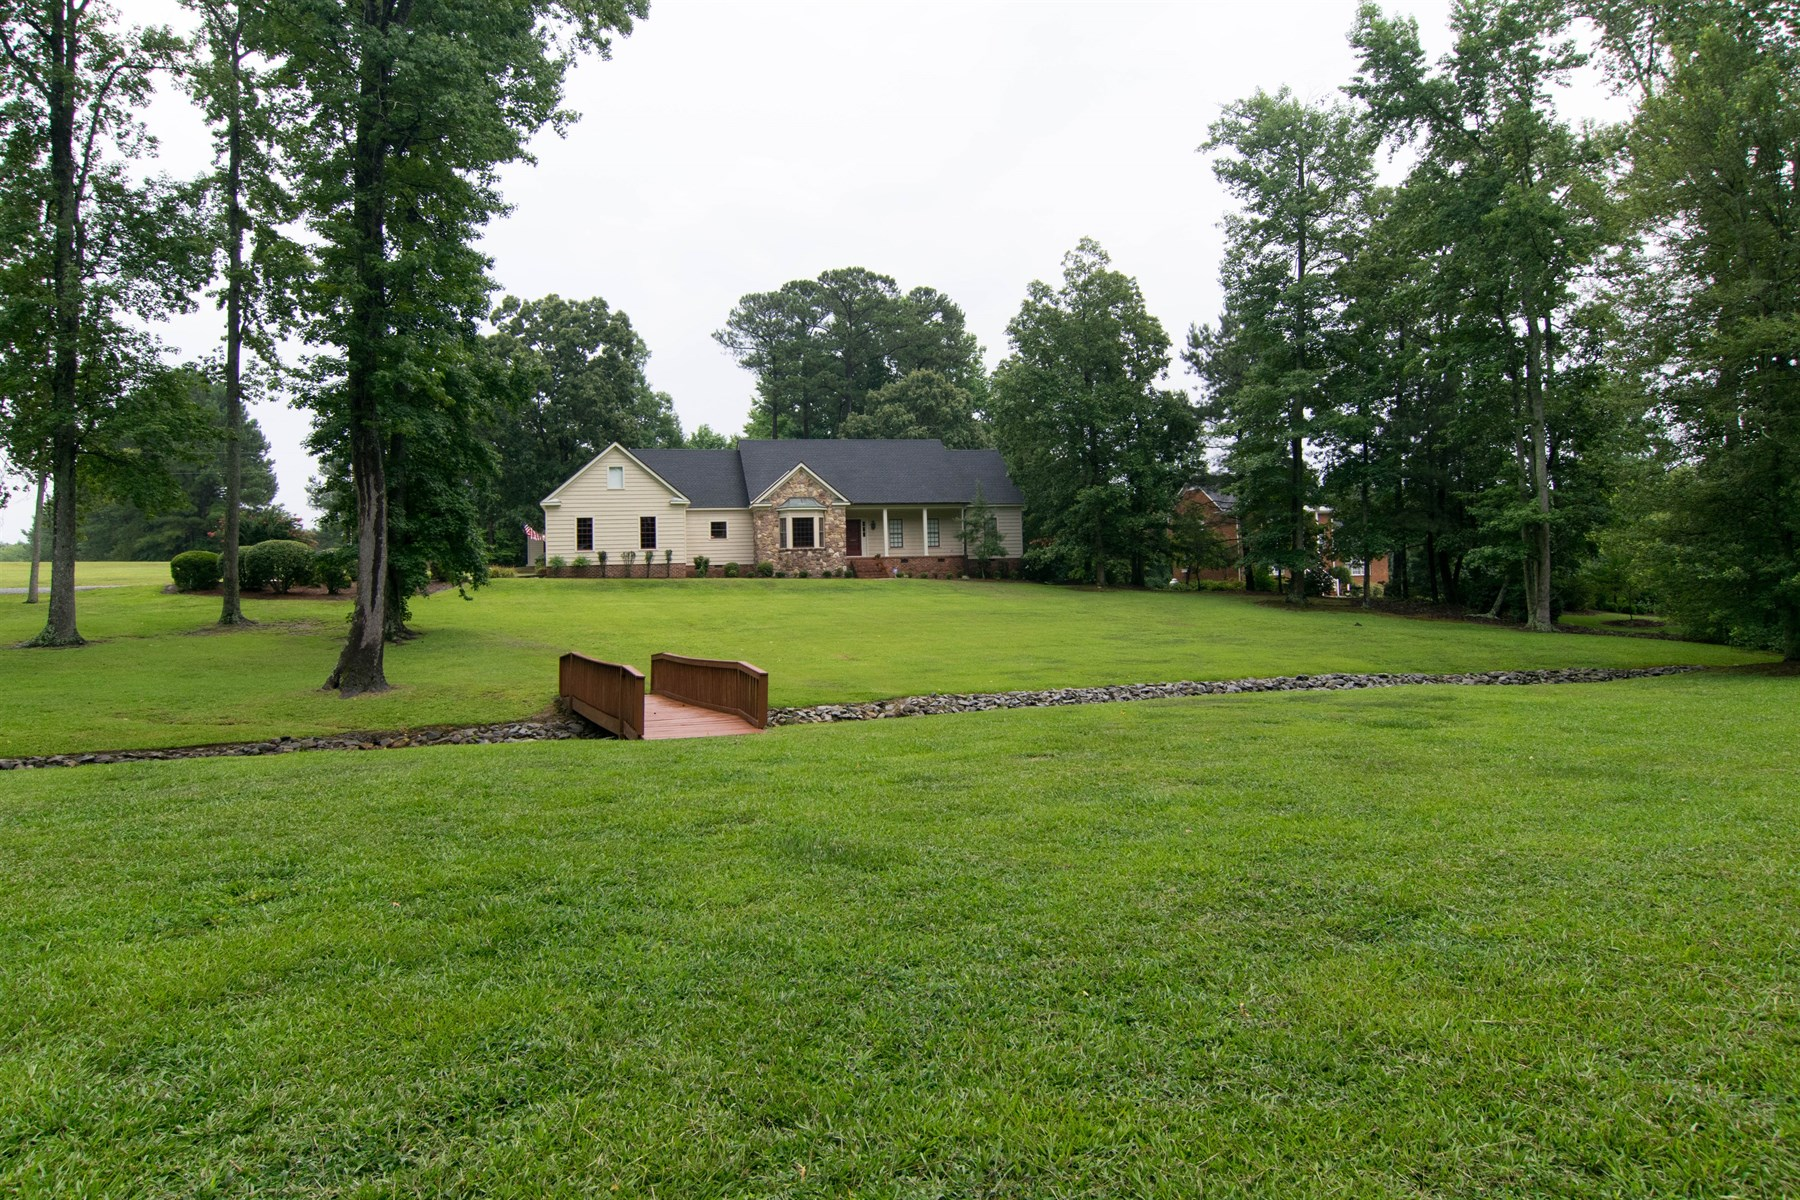 Single Family Home for Sale at Six Acre Gem 2616 NC 242 Hwy W Benson, North Carolina 27504 United StatesIn/Around: Raleigh